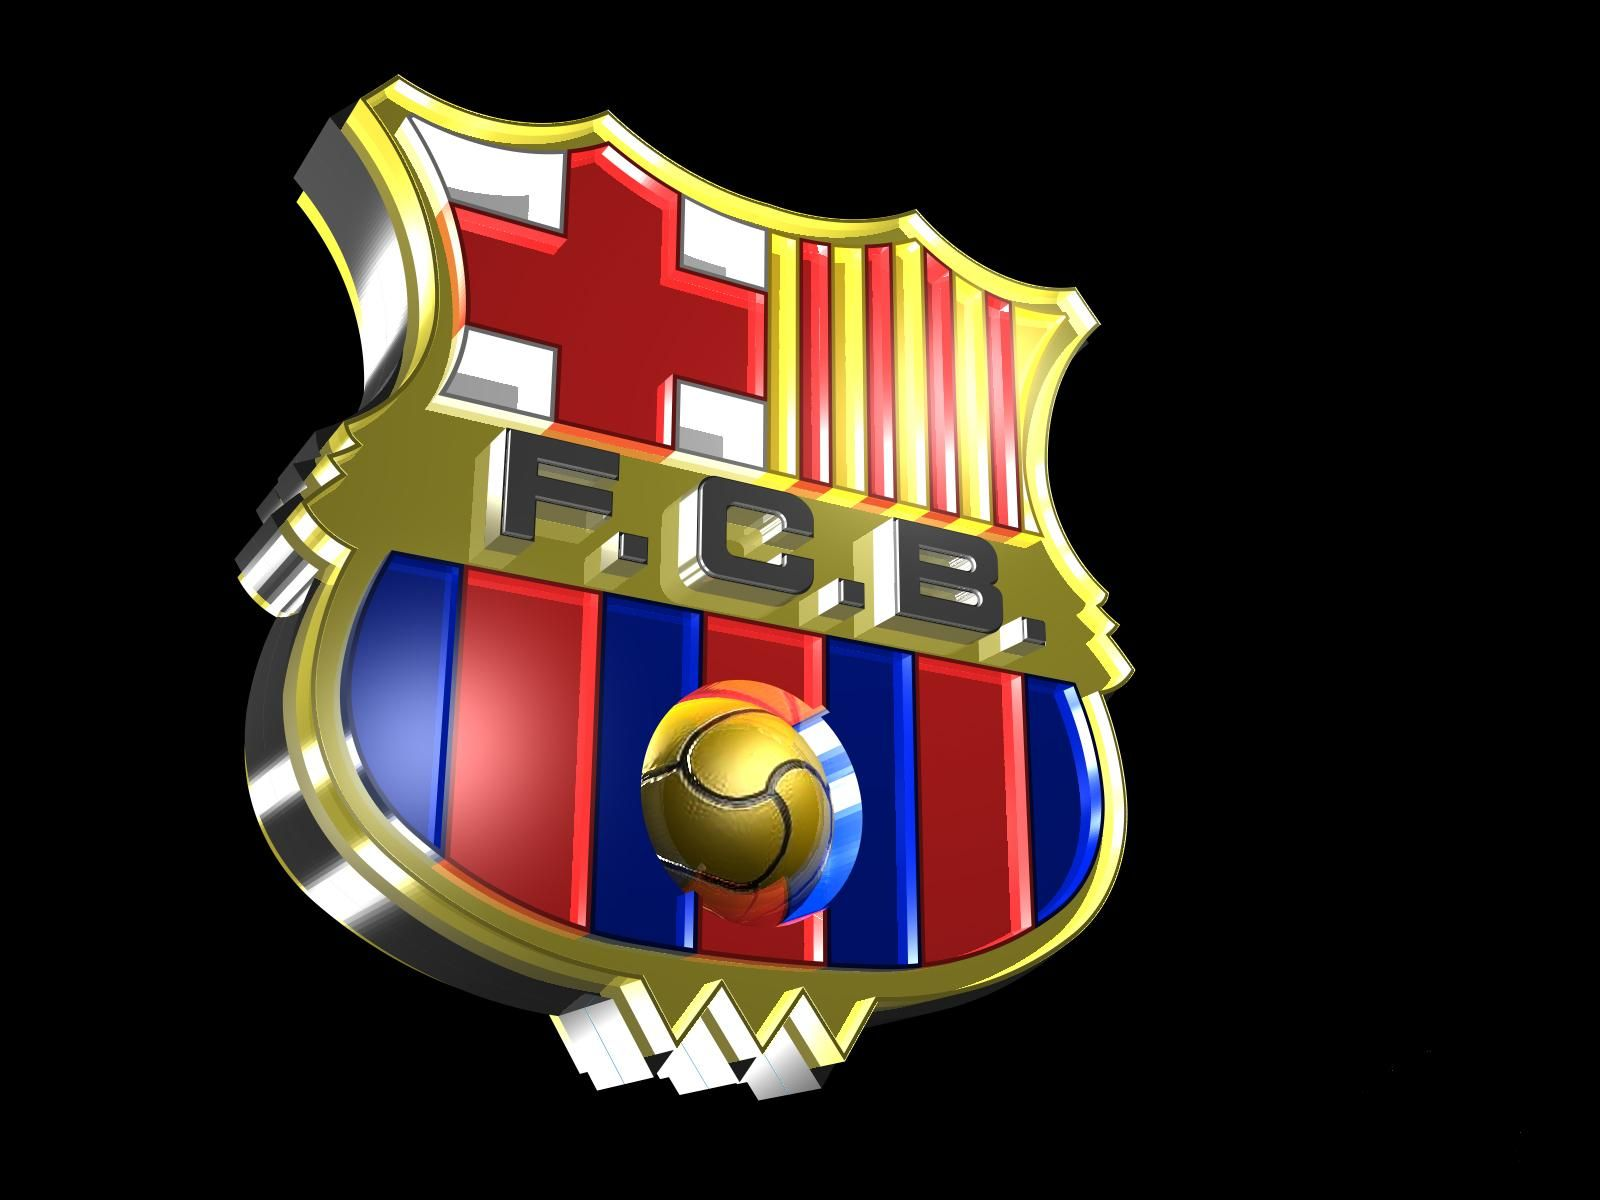 Barcelona Logo 3D Wallpaper Backgrounds http//wallucky